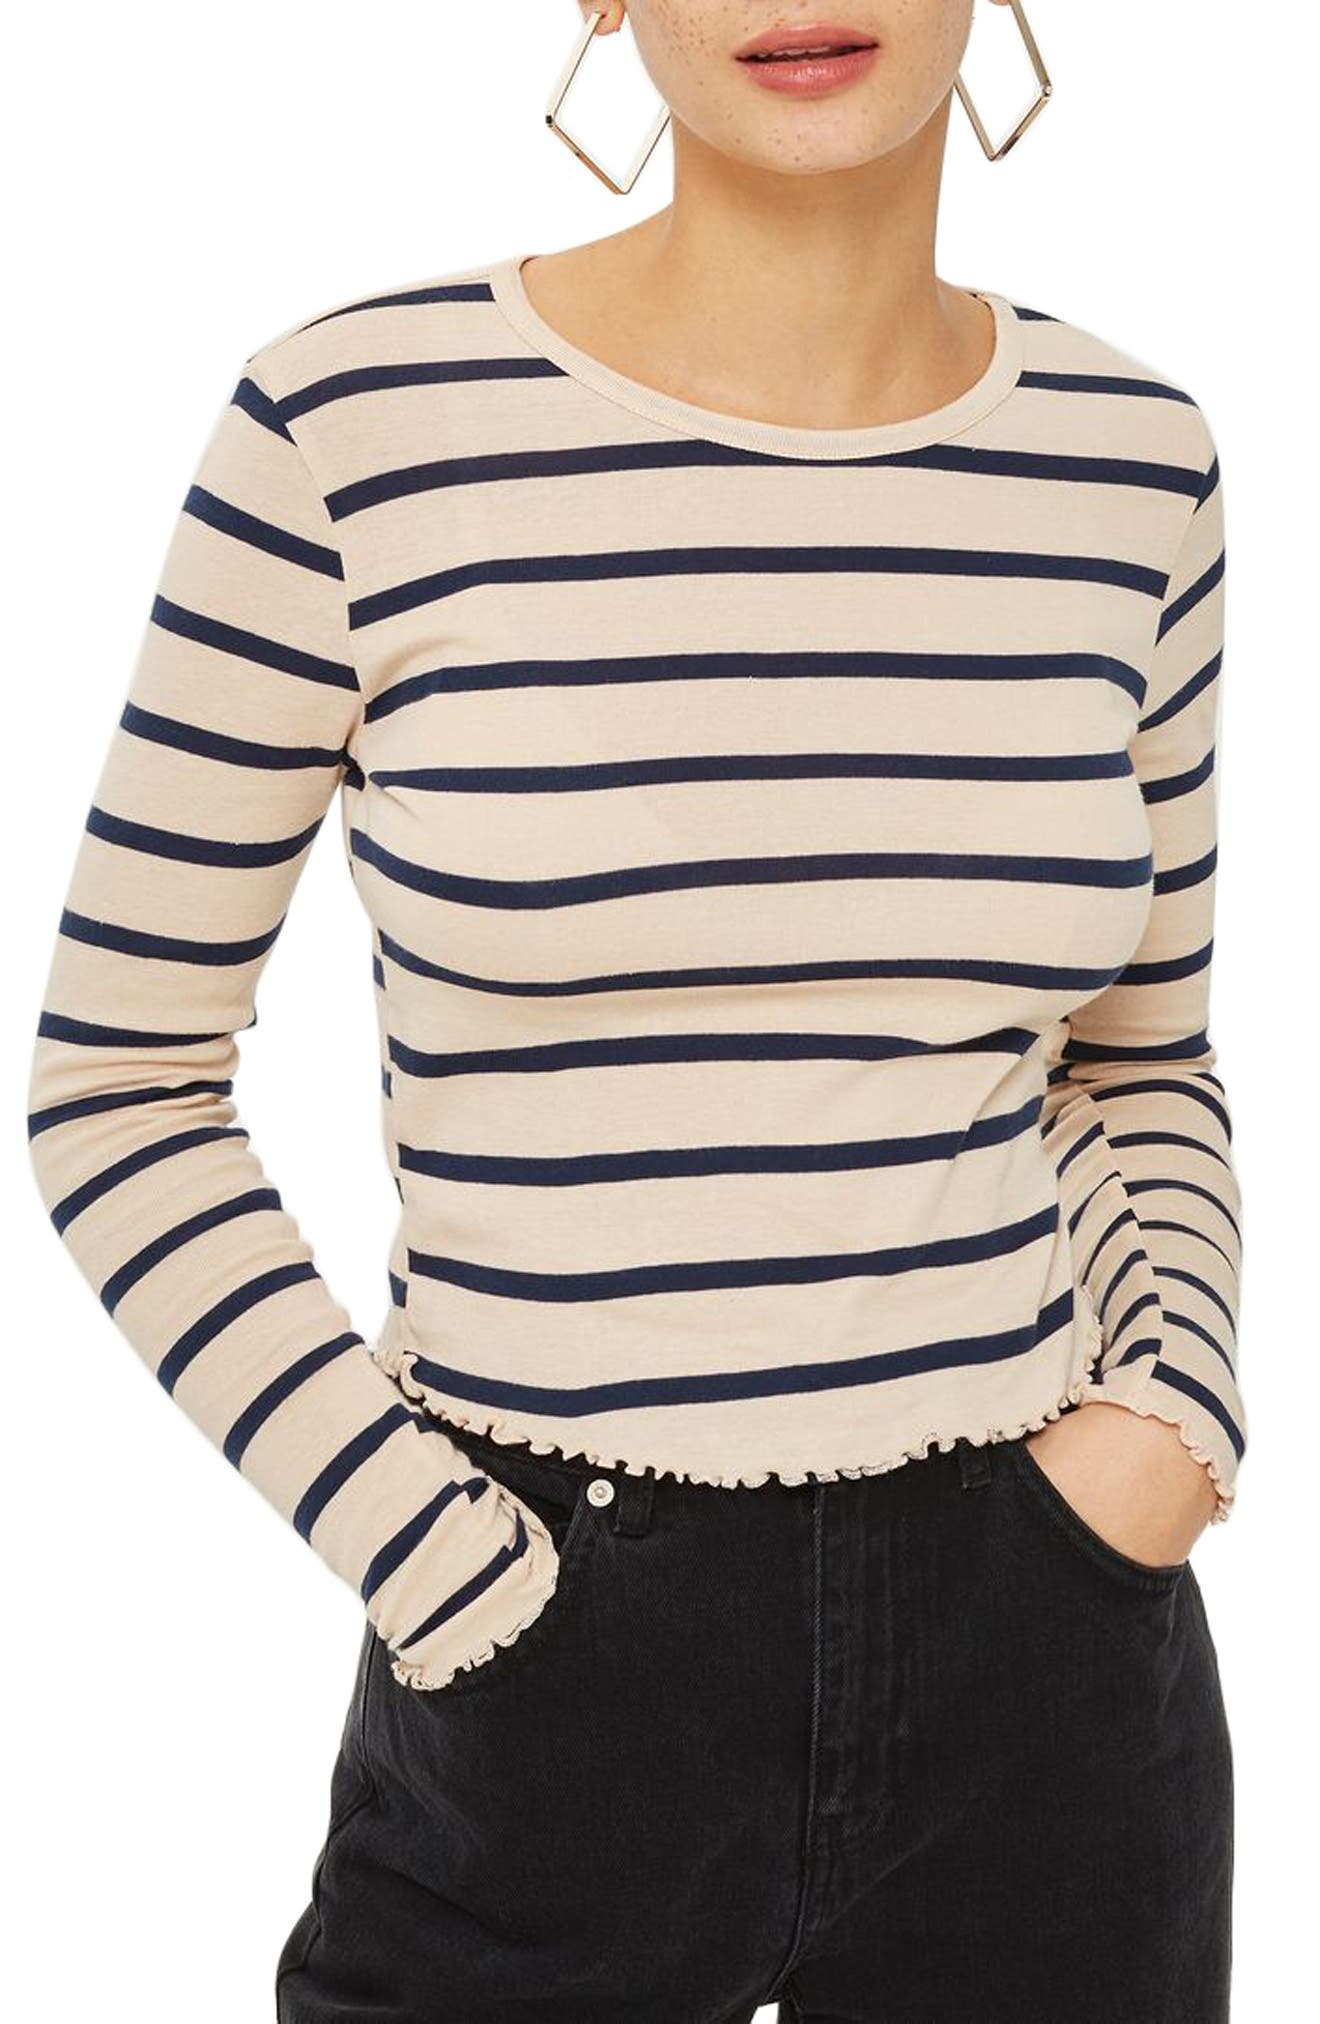 Alternate Image 1 Selected - Topshop Stripe Lettuce Hem Crop Top (Regular & Petite)